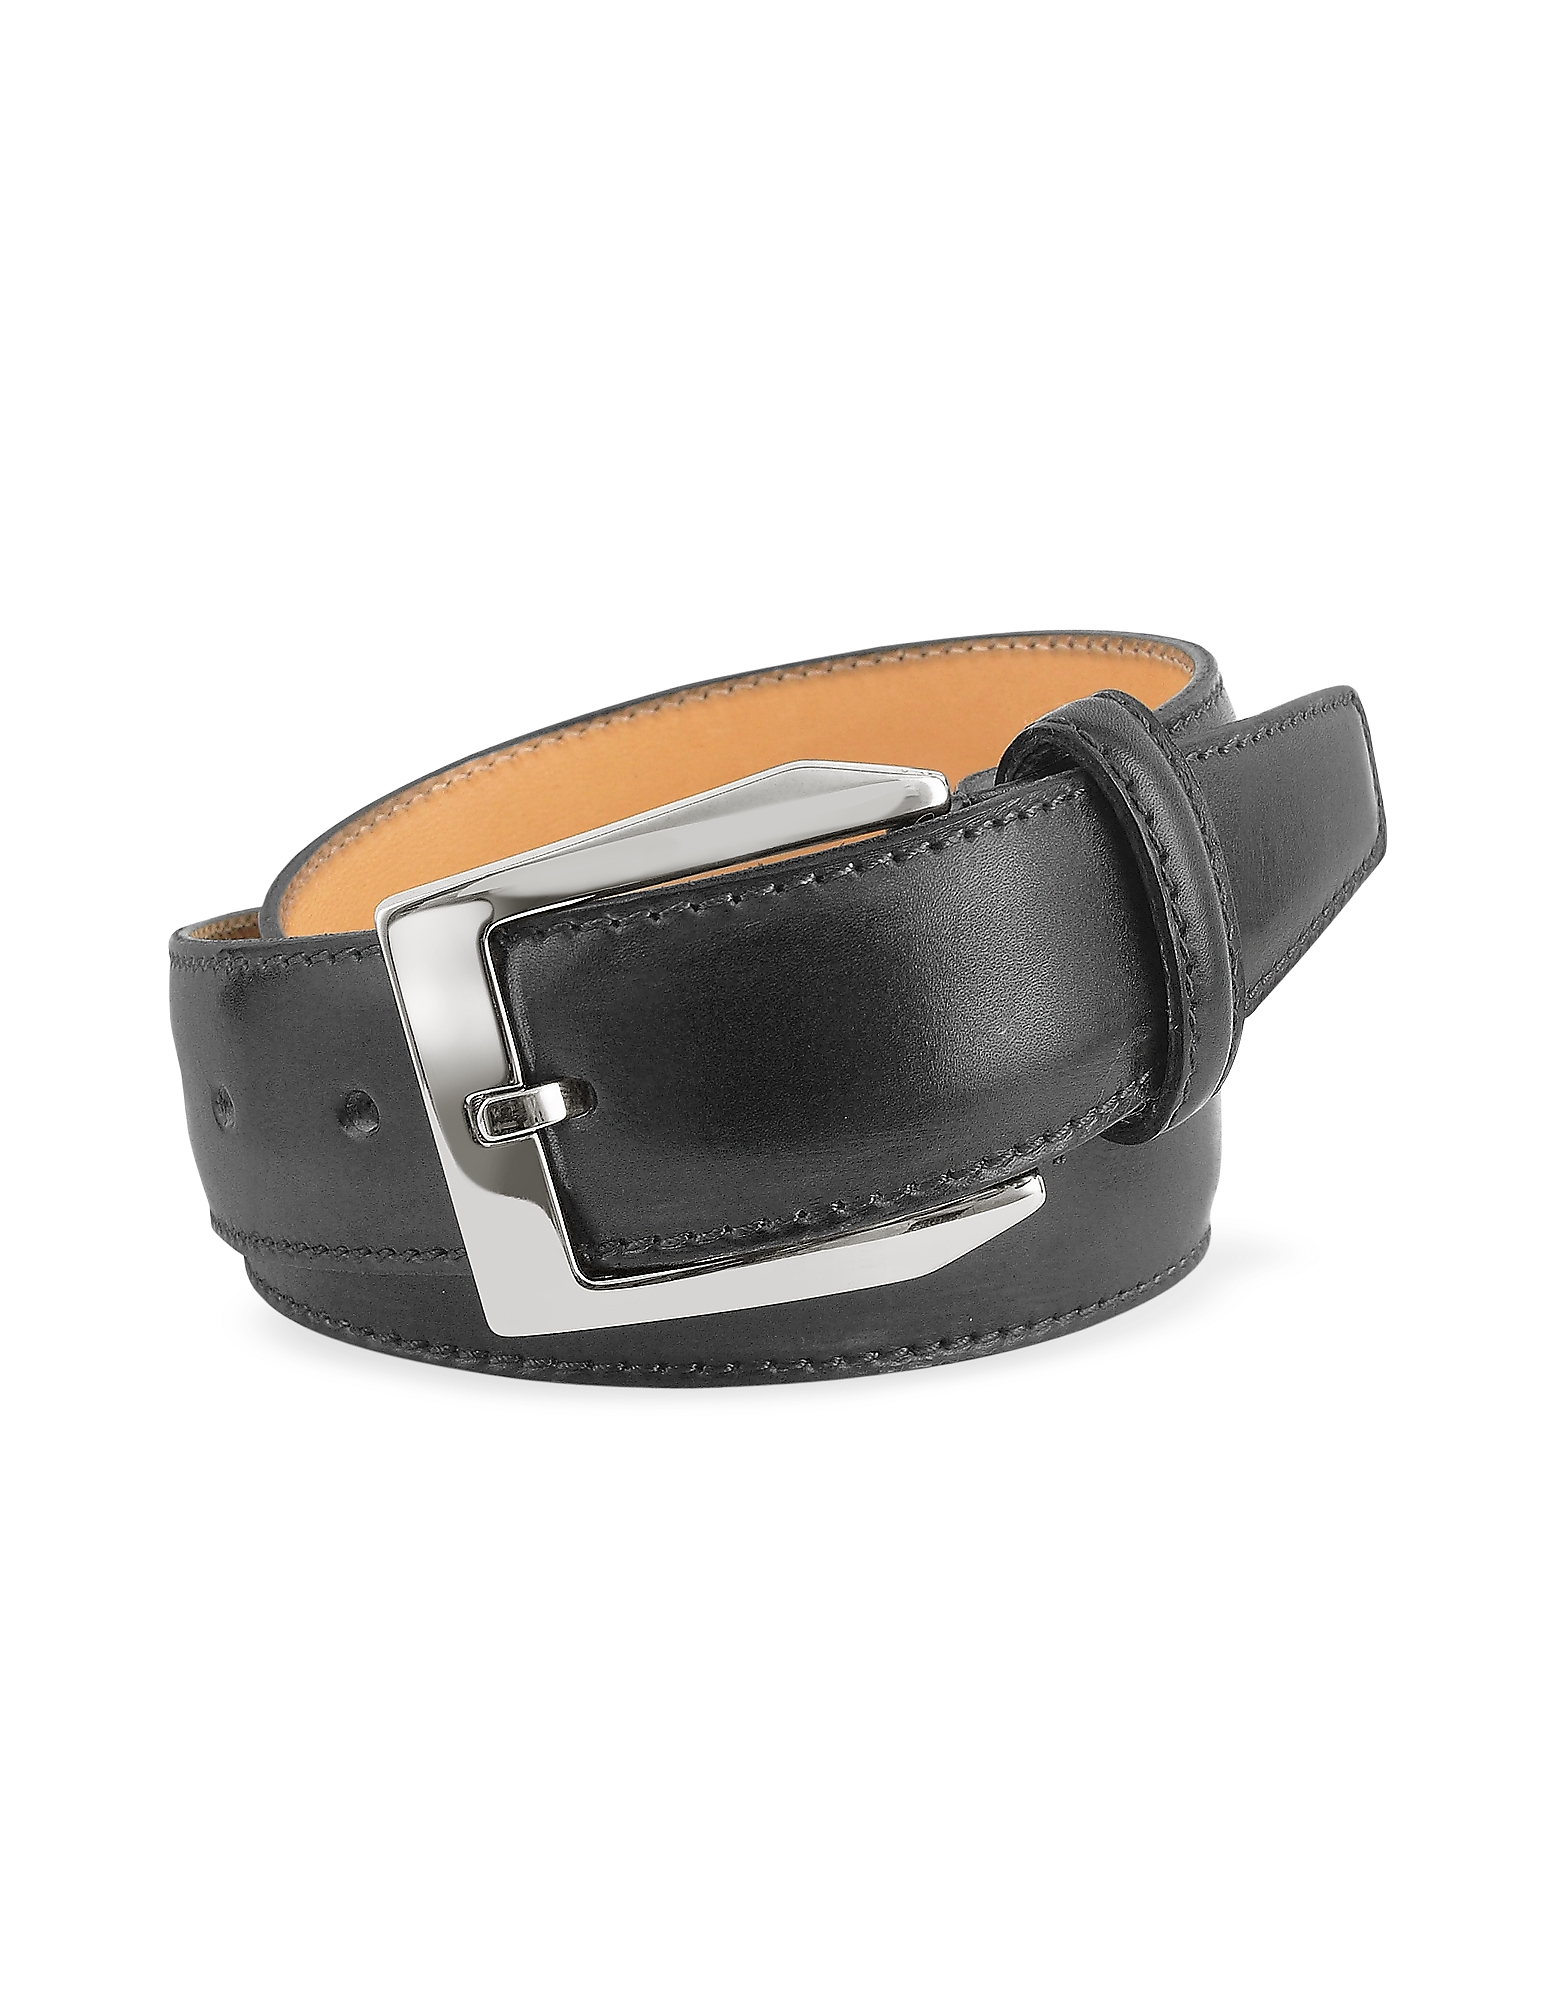 Pakerson Men's Belts, Men's Black Hand Painted Italian Leather Belt